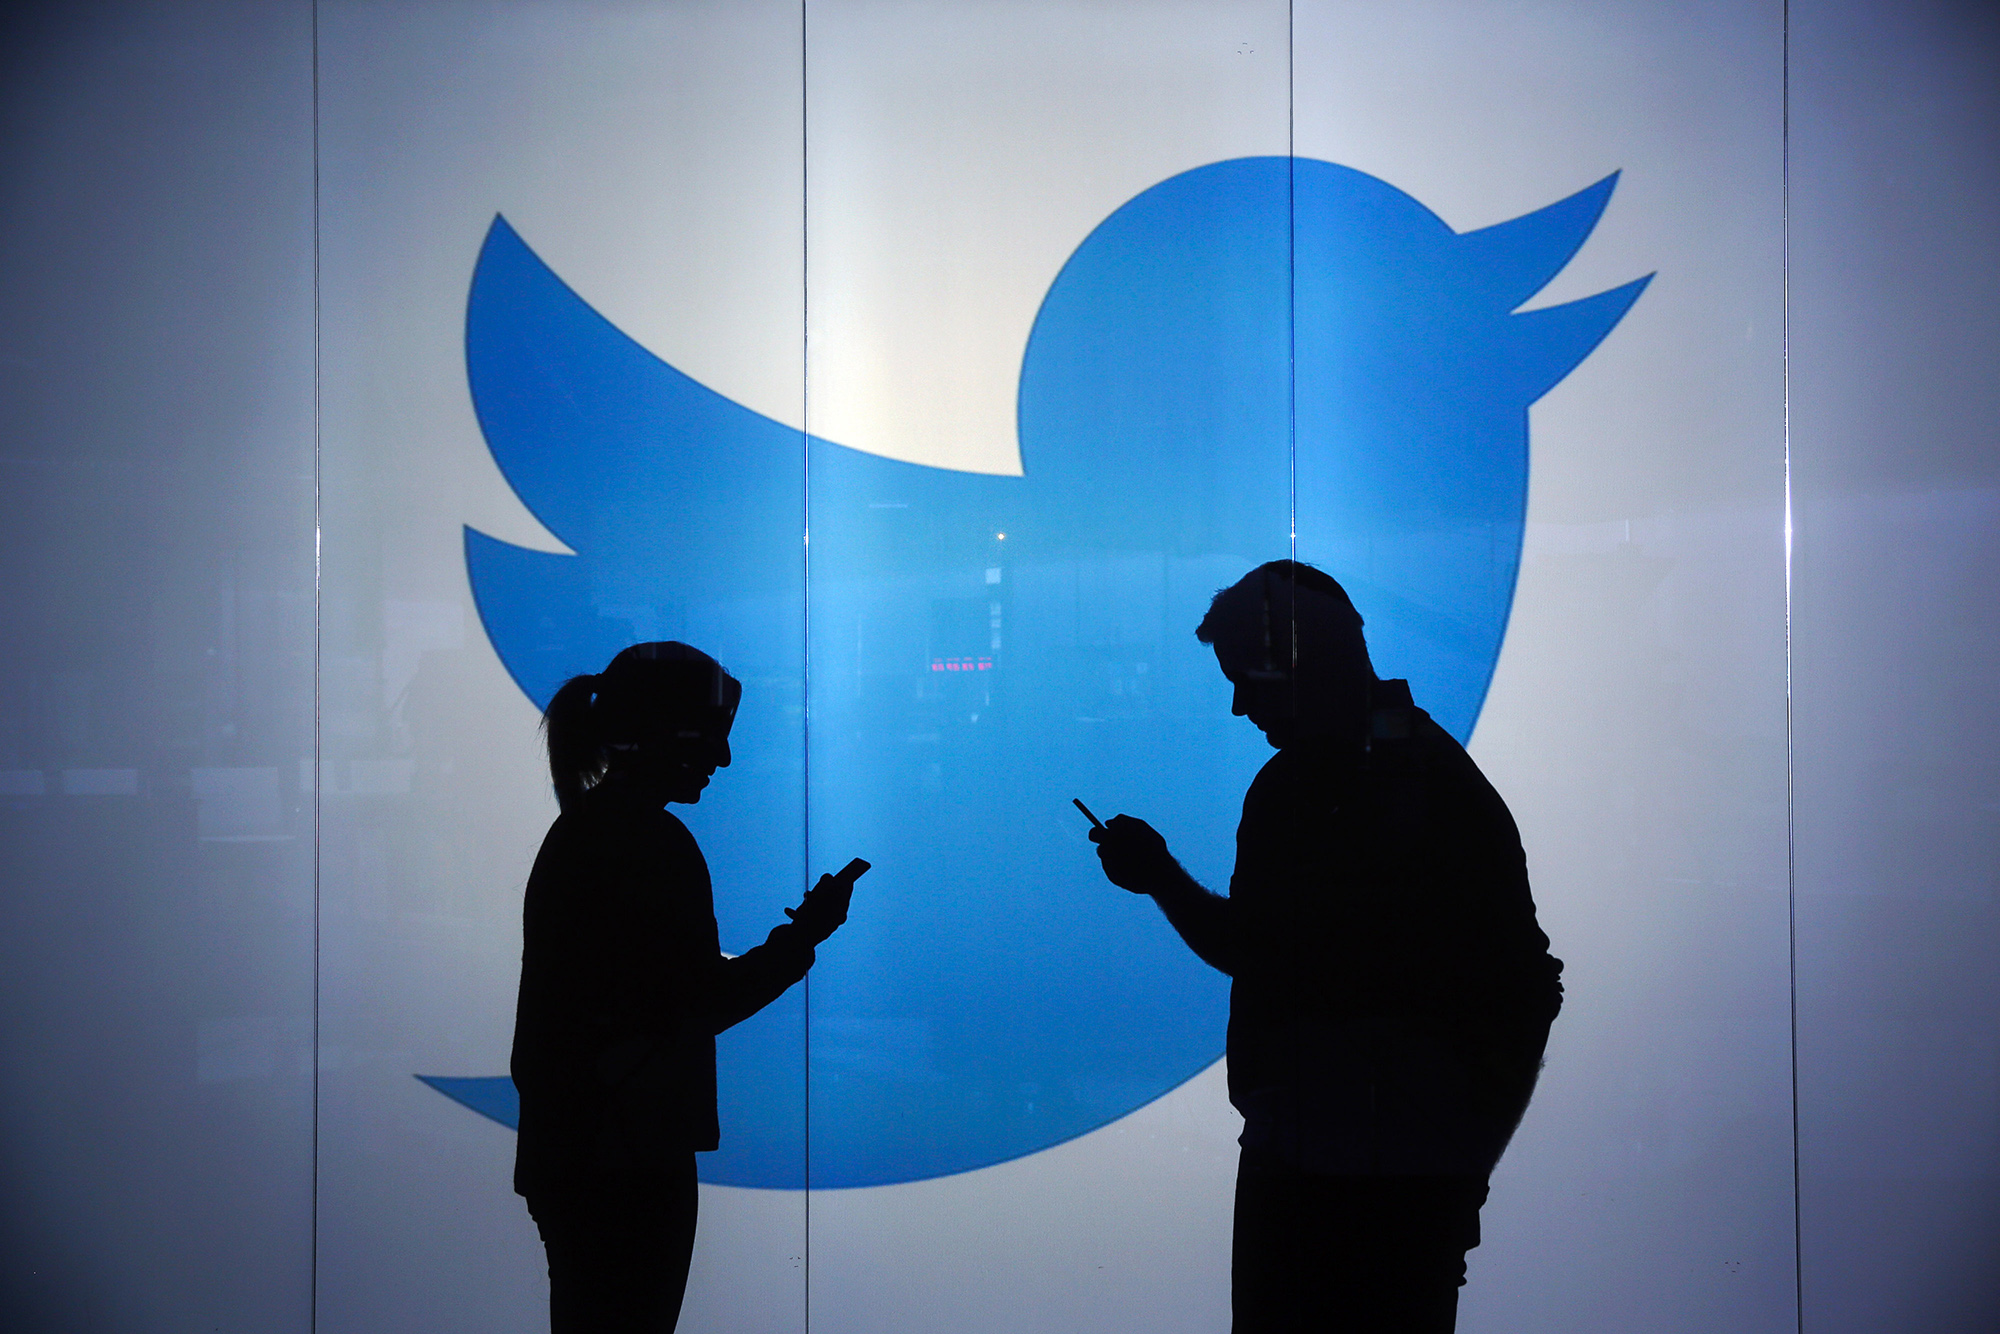 People are seen as silhouettes as they check mobile devices whilst standing against an illuminated wall bearing Twitter Inc.'s logo in this arranged photograph in London, U.K., on Tuesday, Jan. 5, 2016. (Photographer: Chris Ratcliffe/Bloomberg via Getty Images)